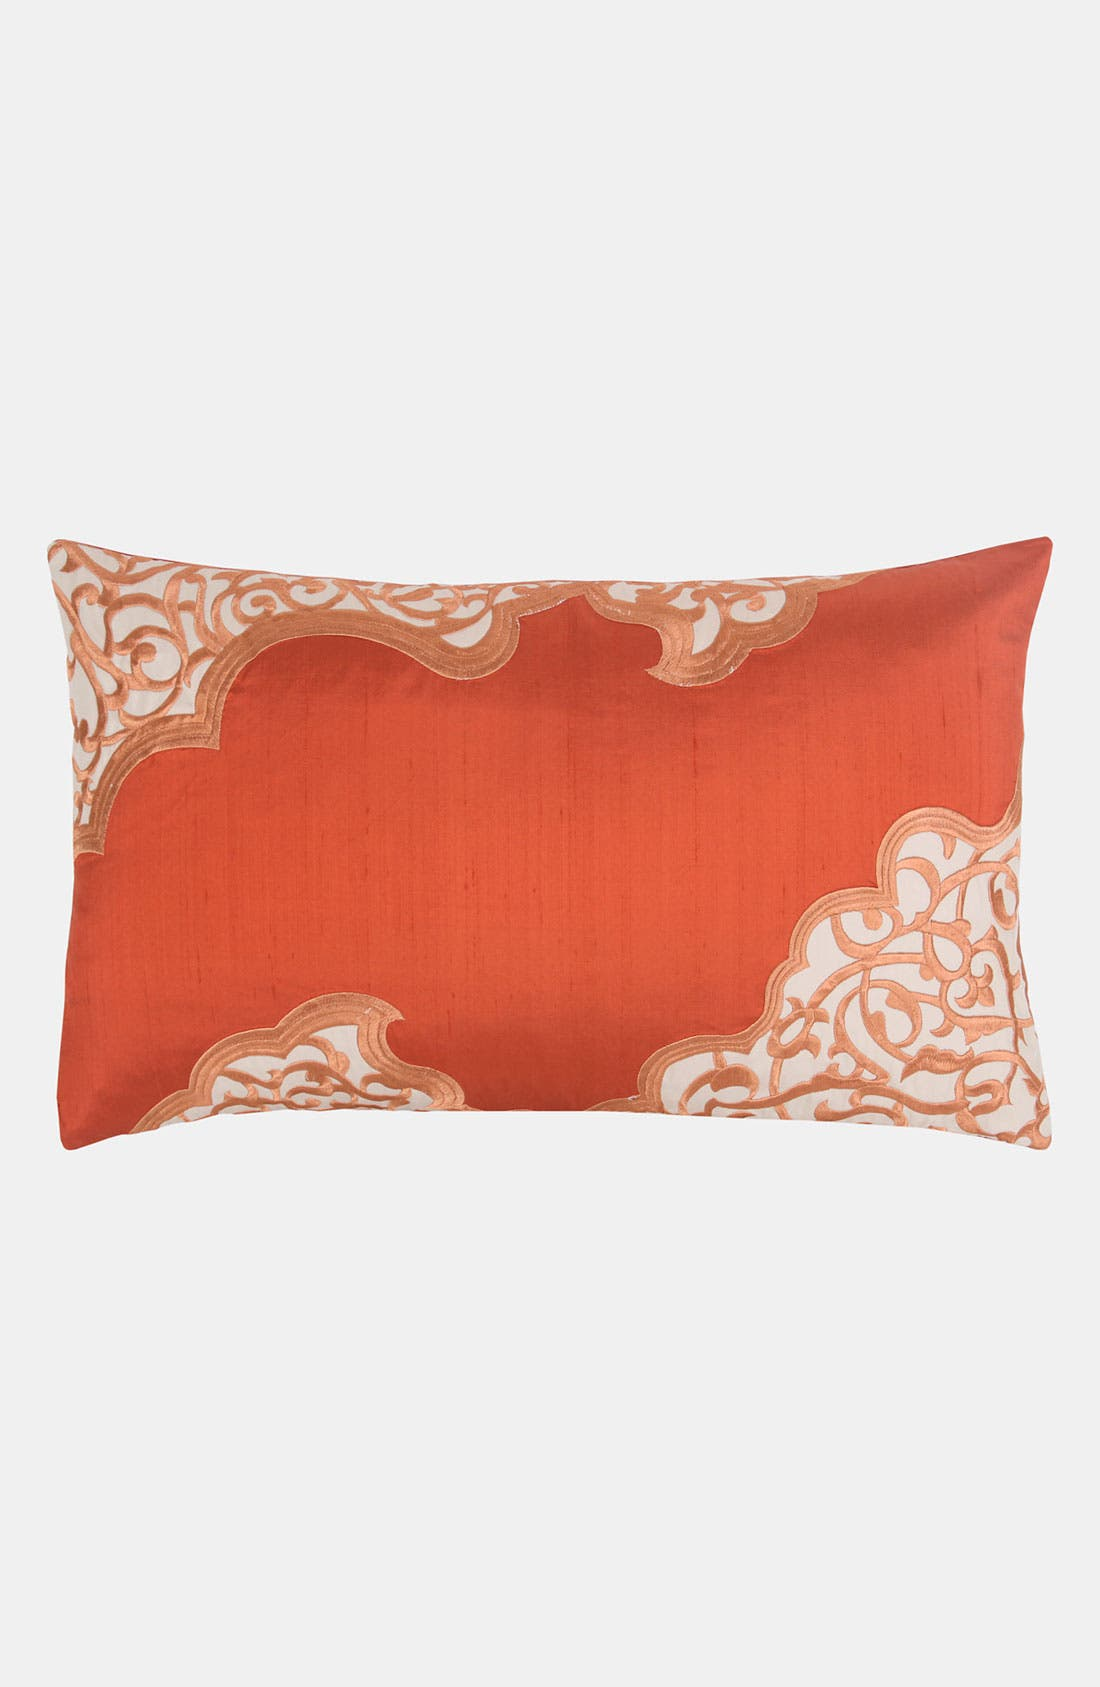 Main Image - Blissliving Home 'Zahara' Pillow (Online Only)